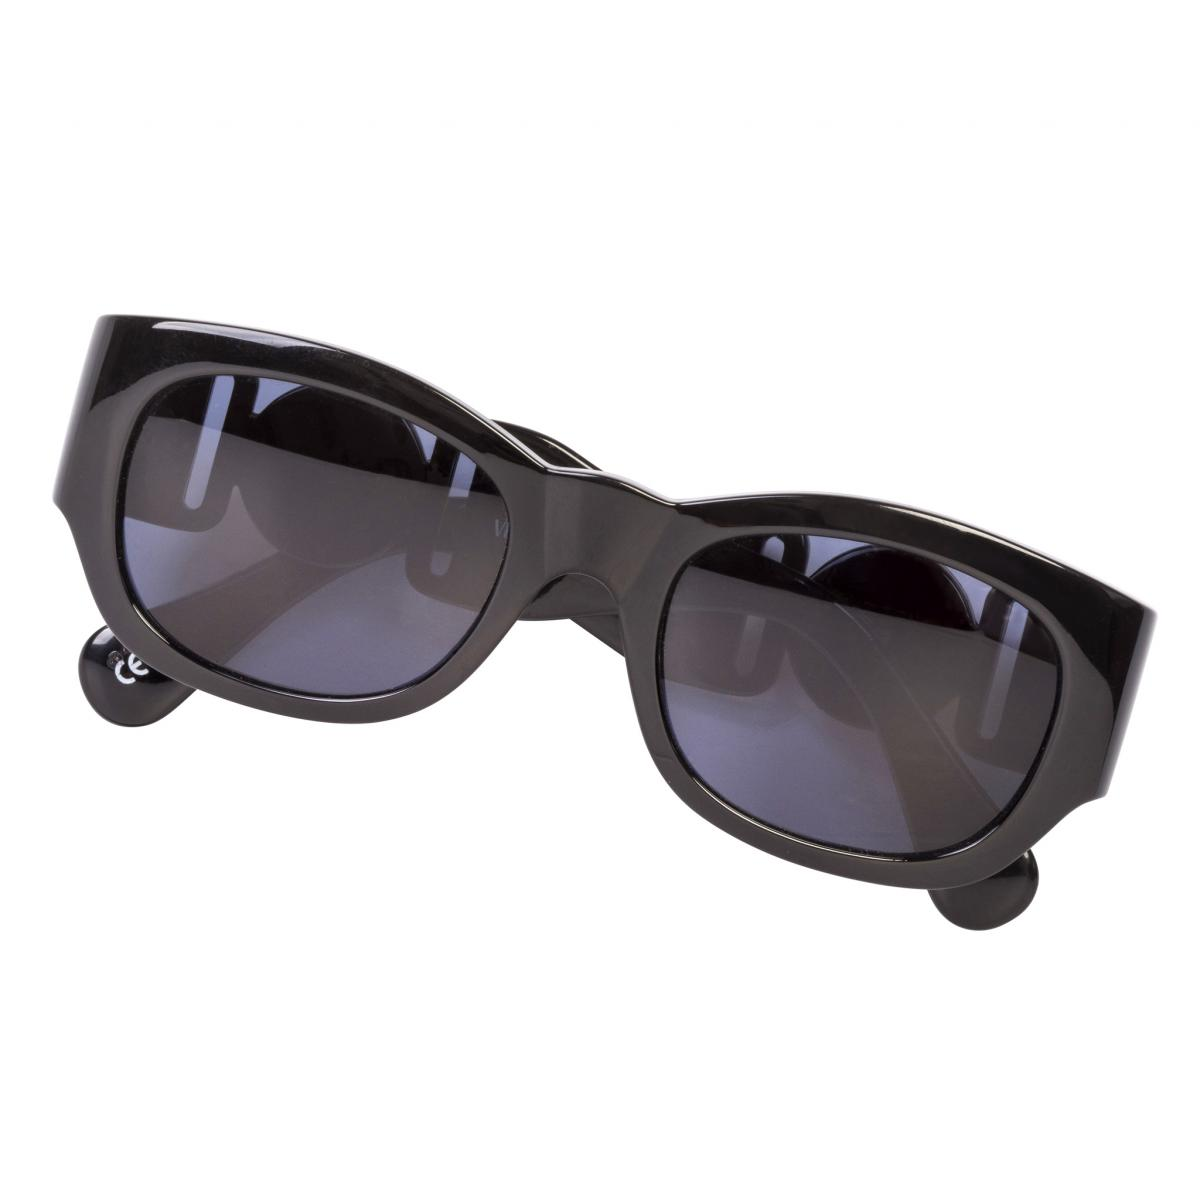 413/a col.852 by Gianni Versace, available on original-juice.com for $999 Kim Kardashian Sunglasses Exact Product